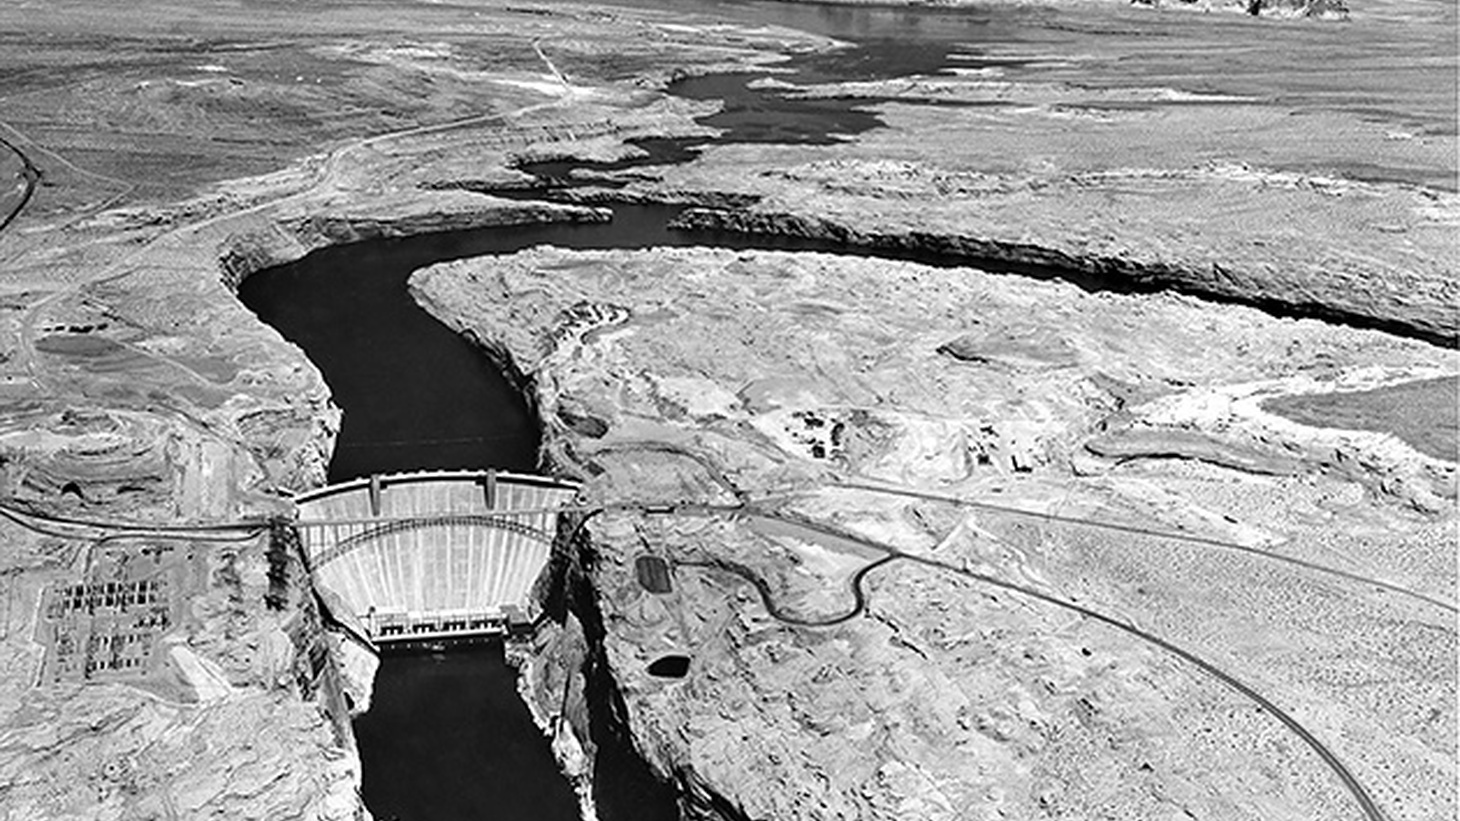 The Glen Canyon Dam is an enormous structure located near the Utah-Arizona border about twenty miles north of the Grand Canyon. It was built to harness and store Colorado River water for surrounding states, and to generate clean energy to power the region.